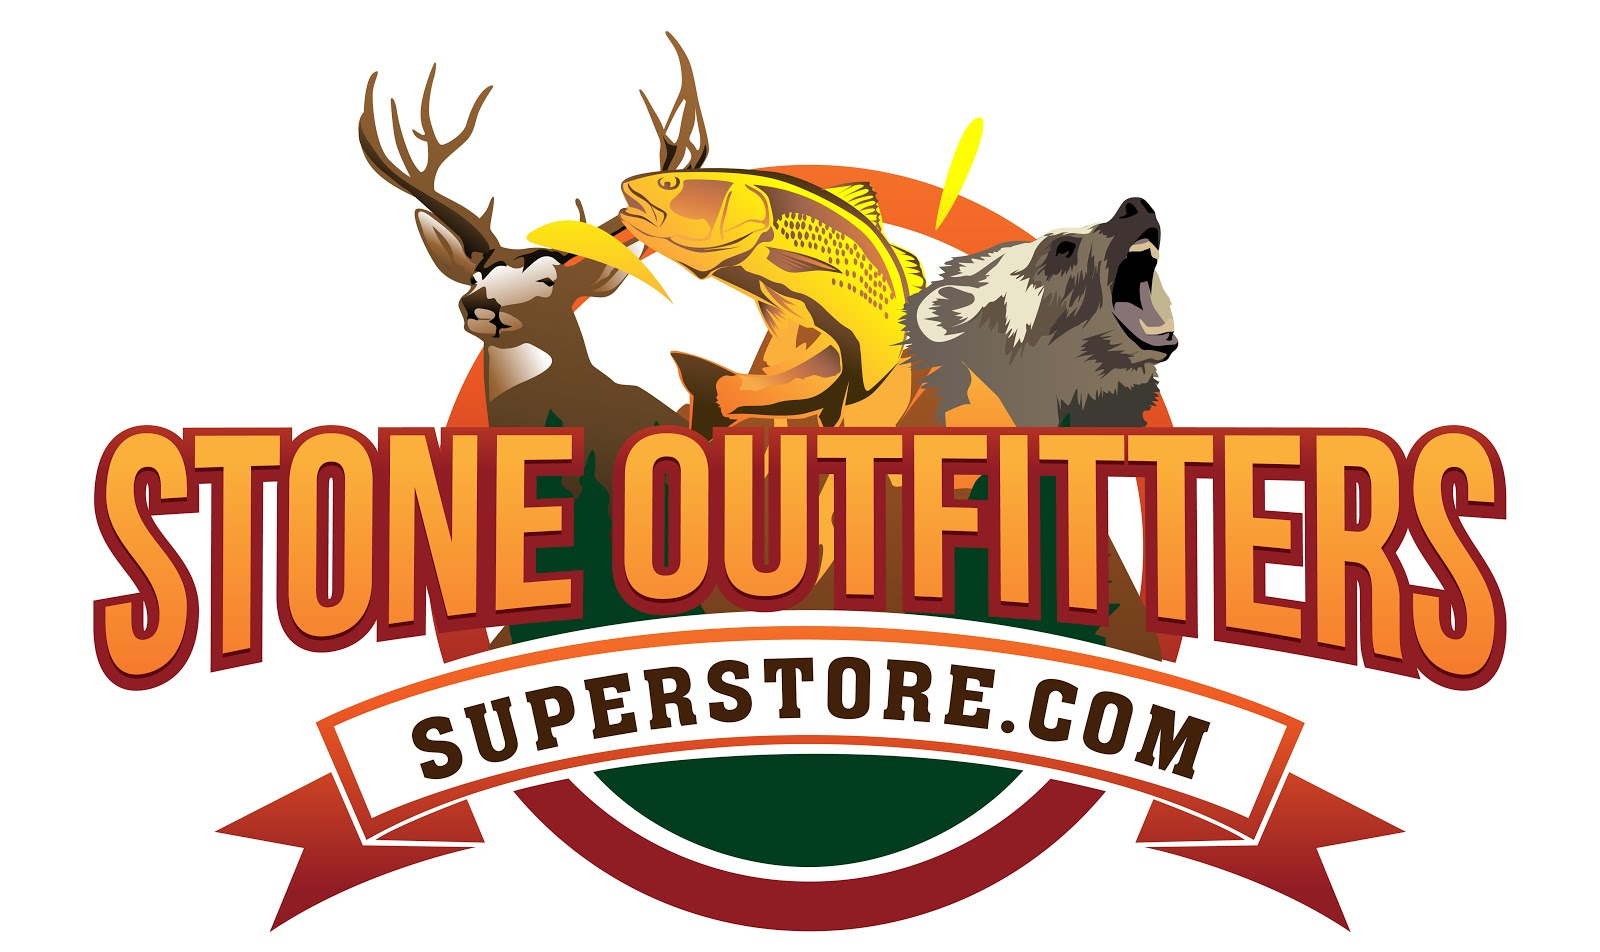 Stone Outfitters Superstore